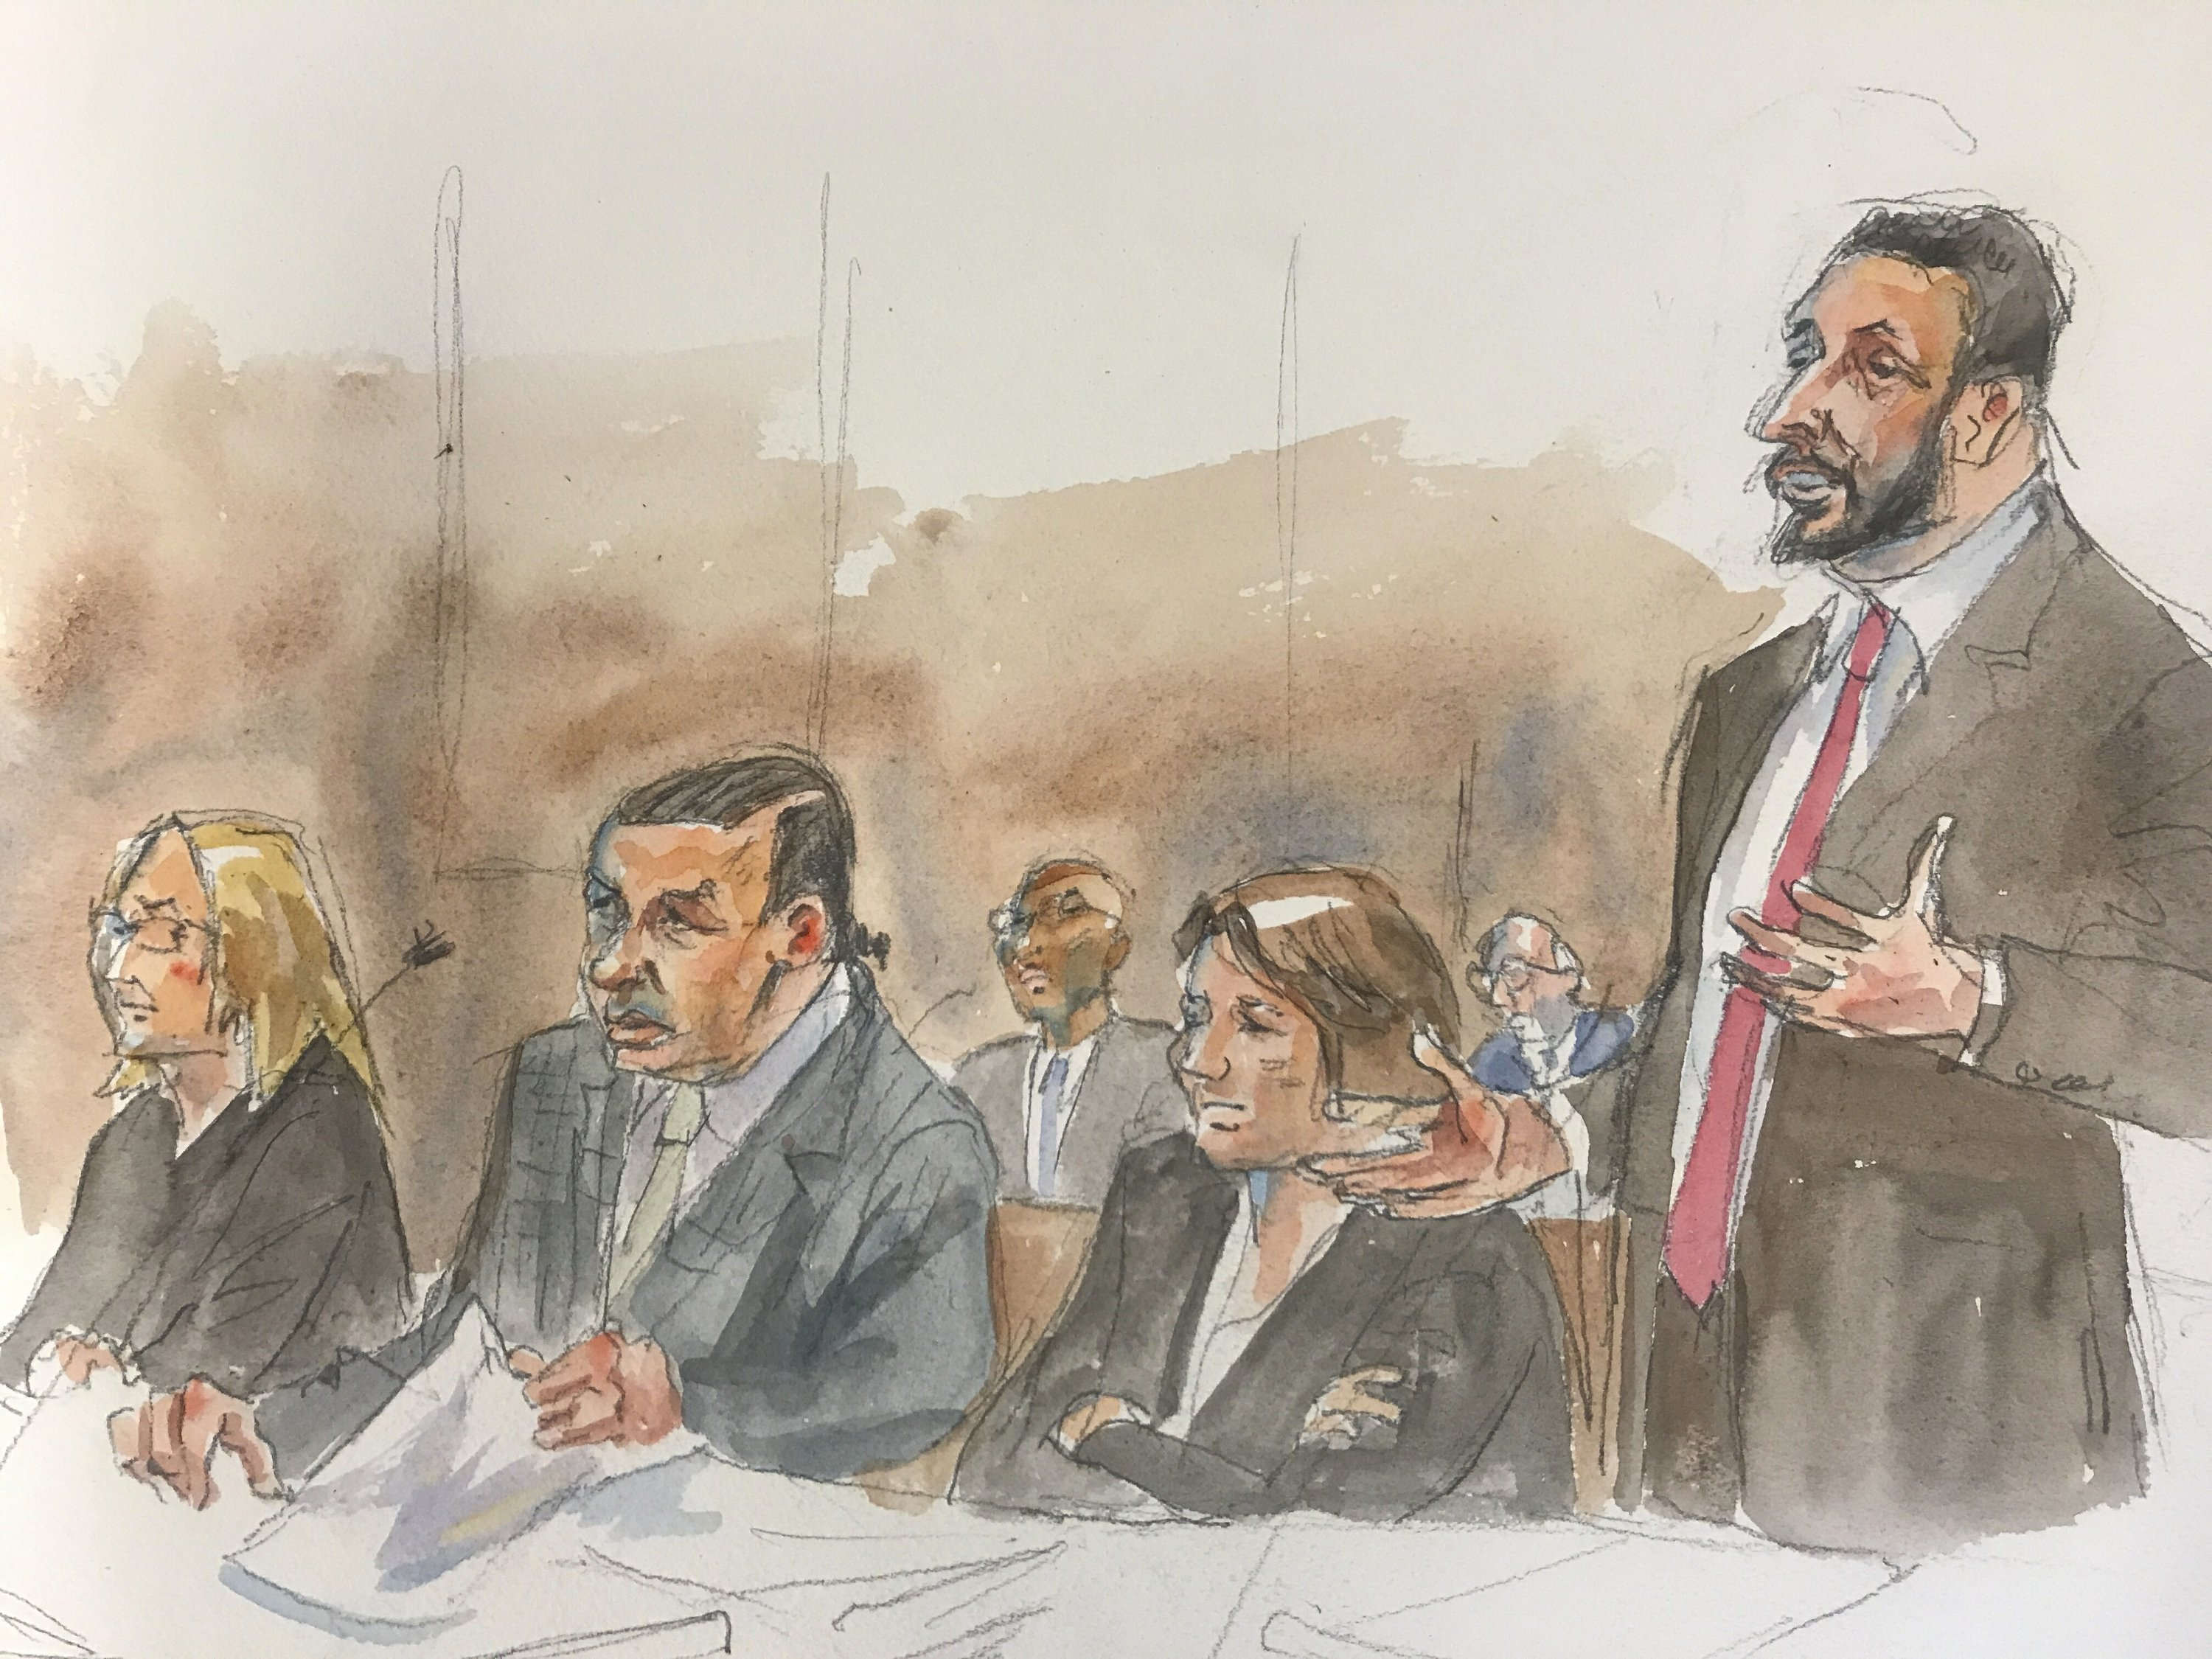 Judge sentences man who sent pipe bombs to Dems to 20 years